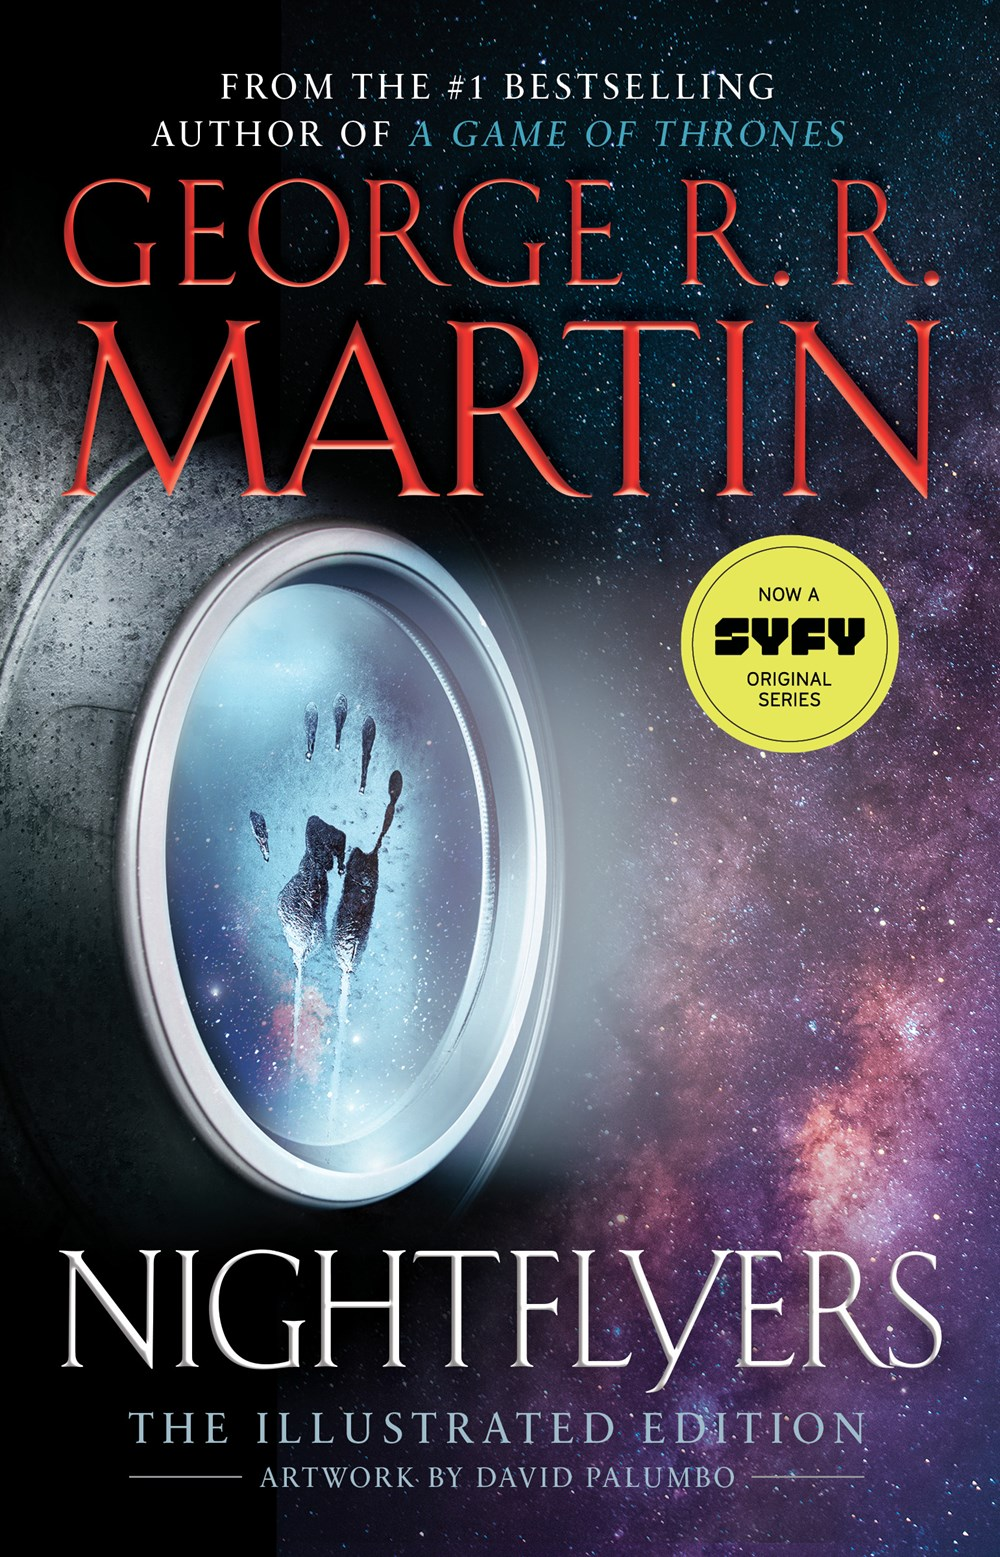 Nightflyers by George R.R. Martin